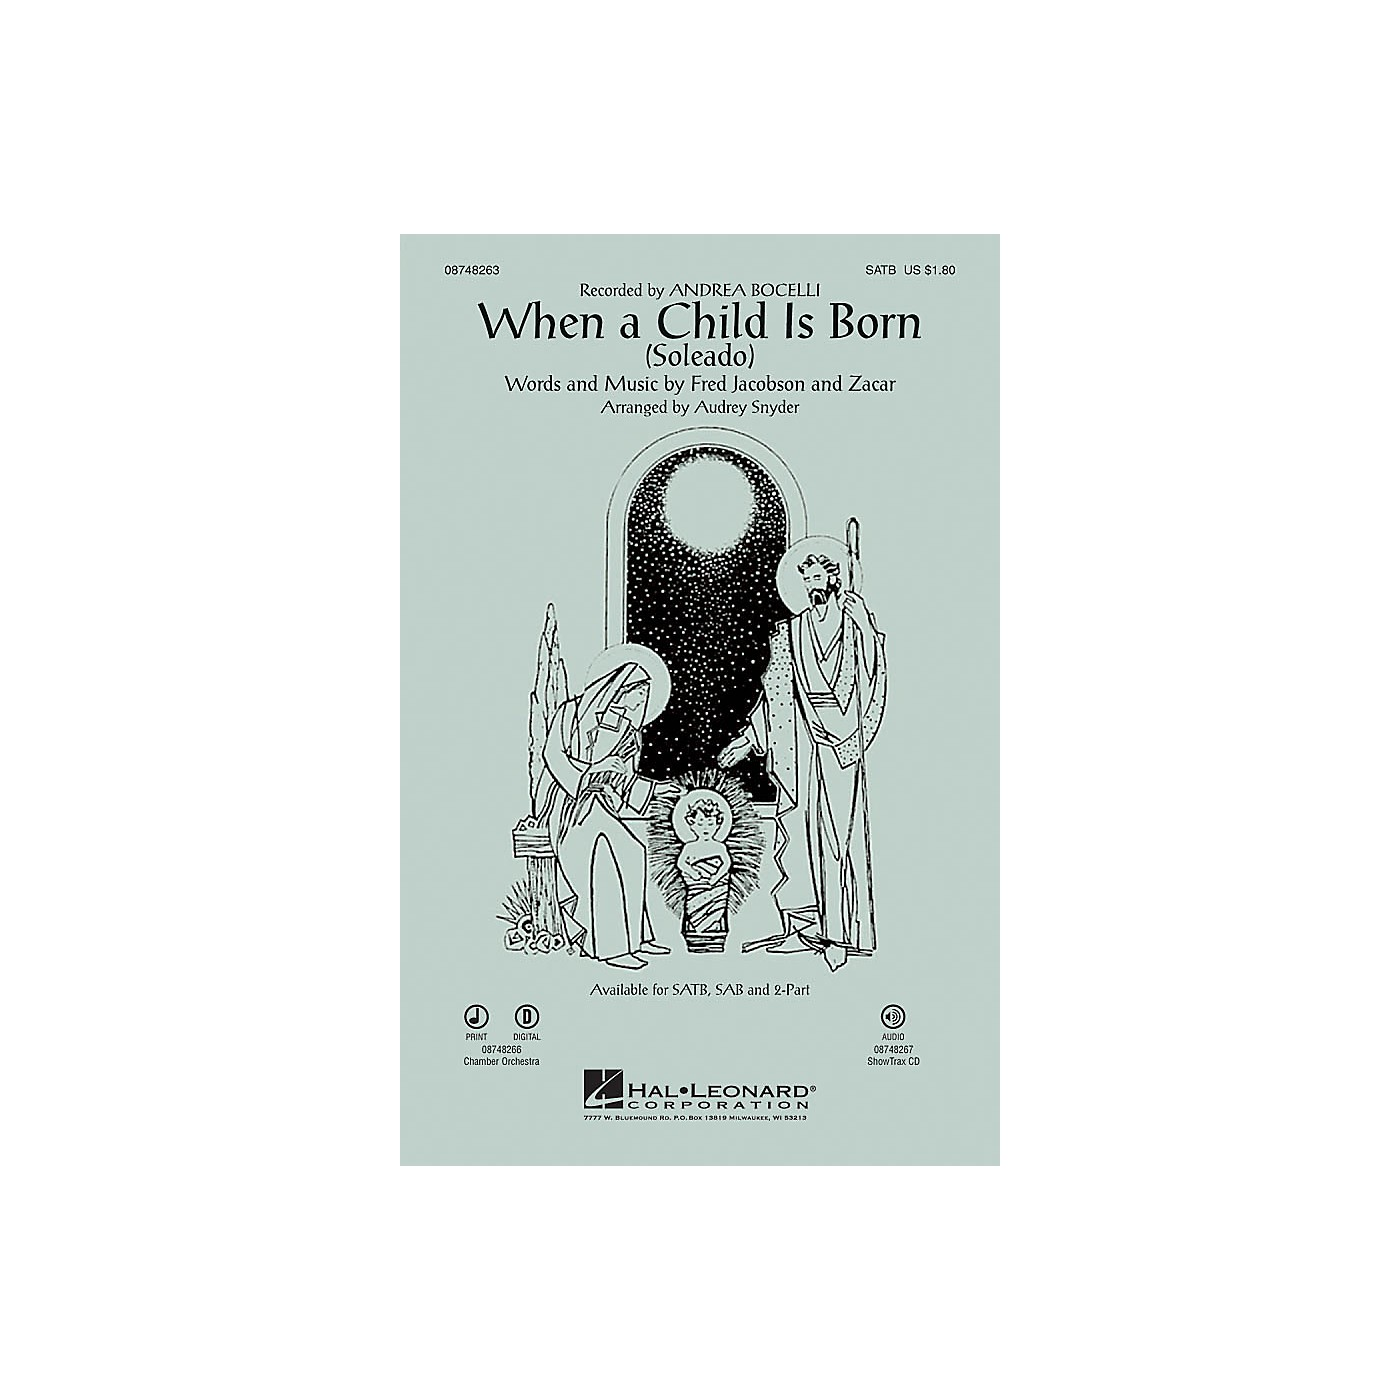 Hal Leonard When a Child Is Born (Soleado) SAB by Andrea Bocelli Arranged by Audrey Snyder thumbnail